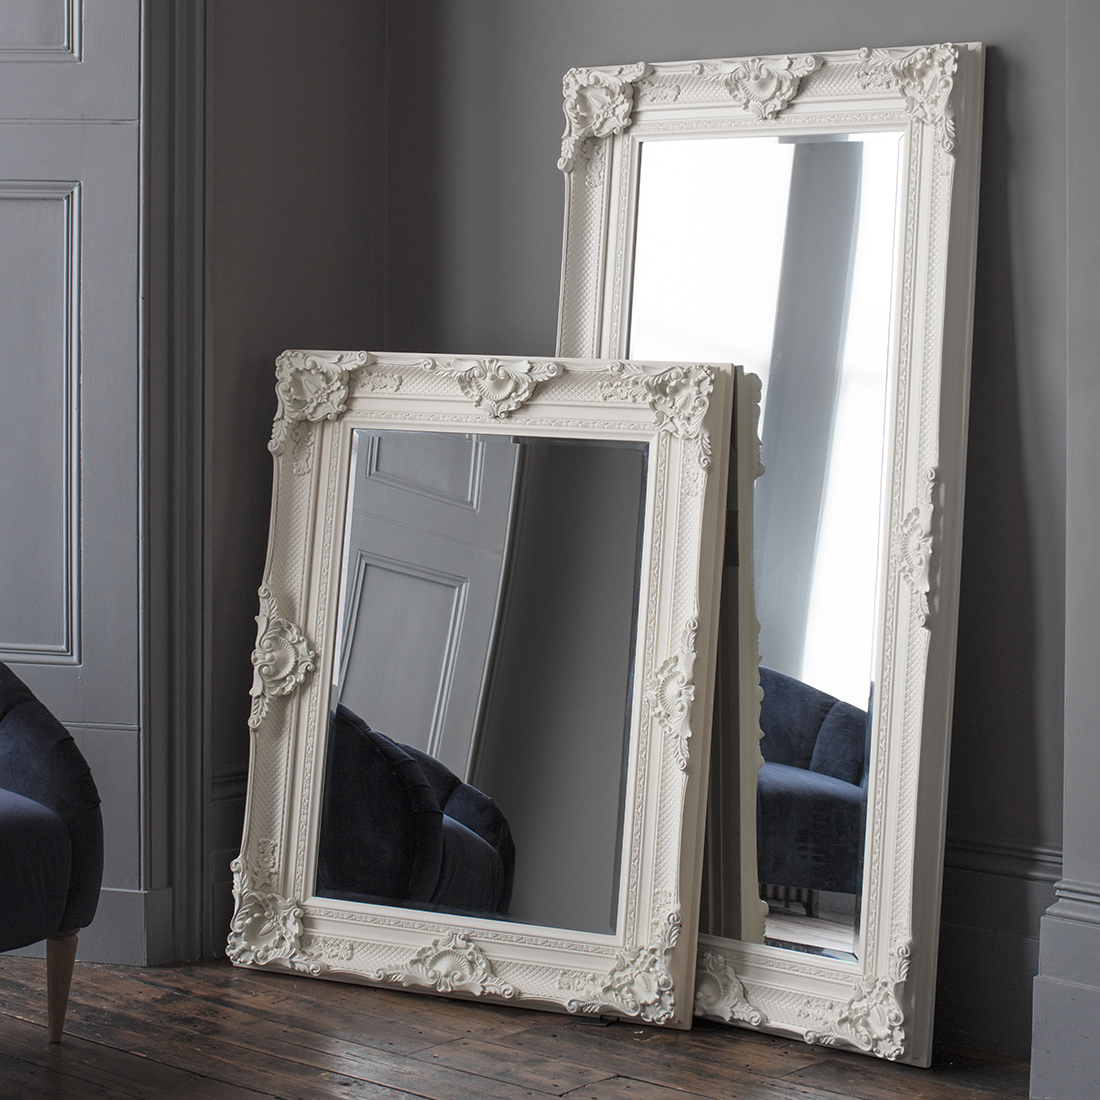 Ivory Ornate Wall & Floor Mirror in Rectangle Ornate Geometric Wall Mirrors (Image 10 of 30)